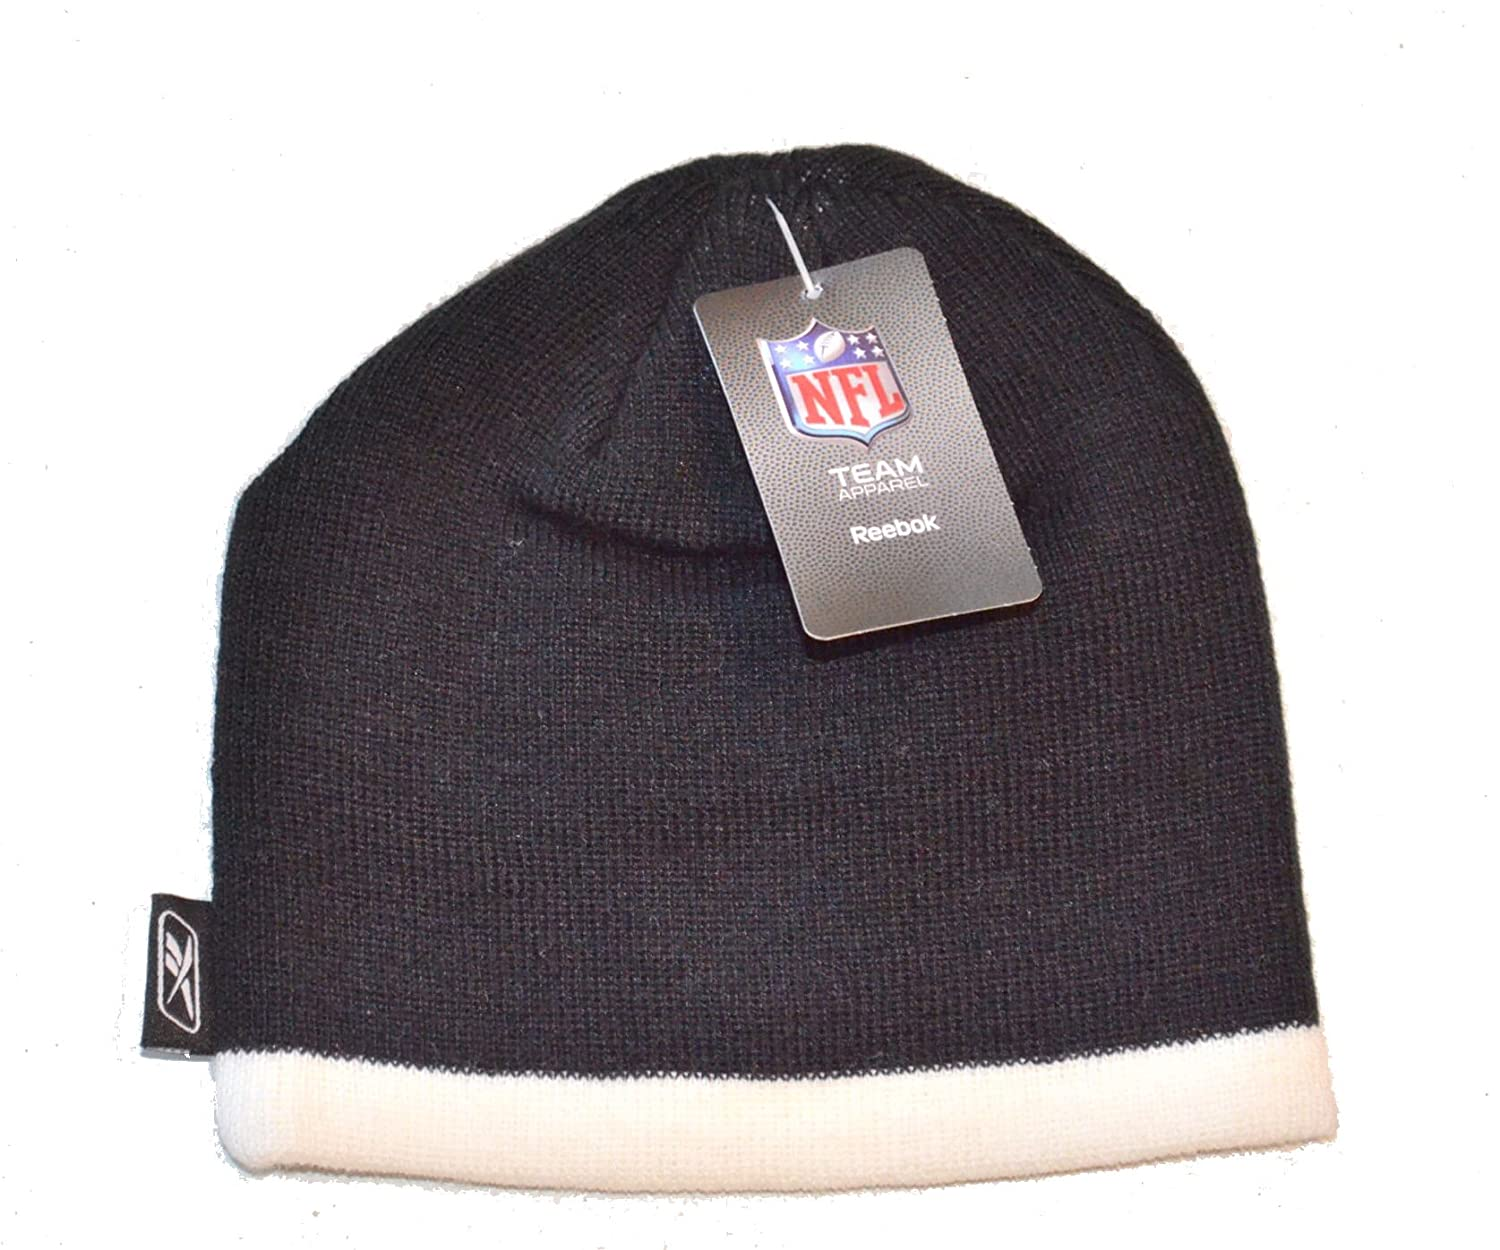 f987d1943f7ac Amazon.com   Oakland Raiders Toddler Striped Beanie Hat - NFL Baby Knit  Gift Cap   Sports   Outdoors